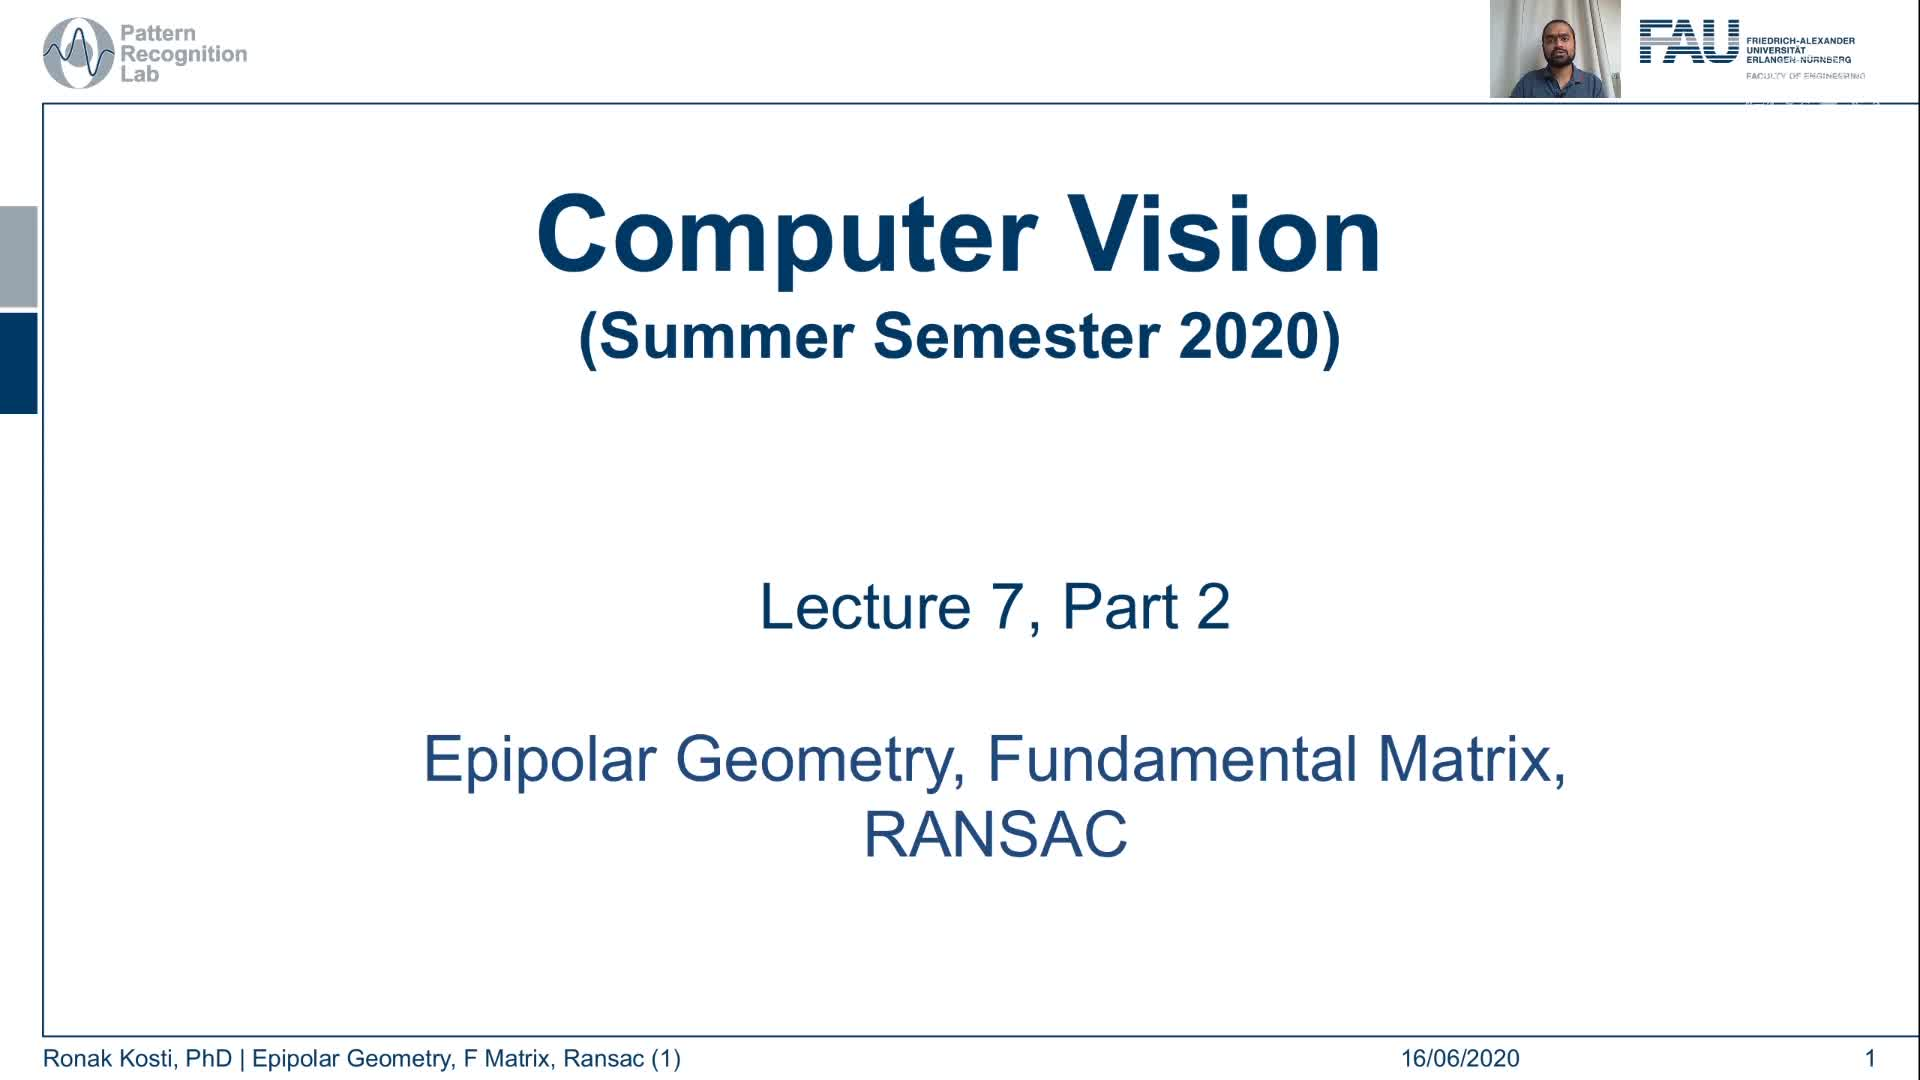 Epipolar Geometry and Ransac (Lecture 7, Part 2) preview image